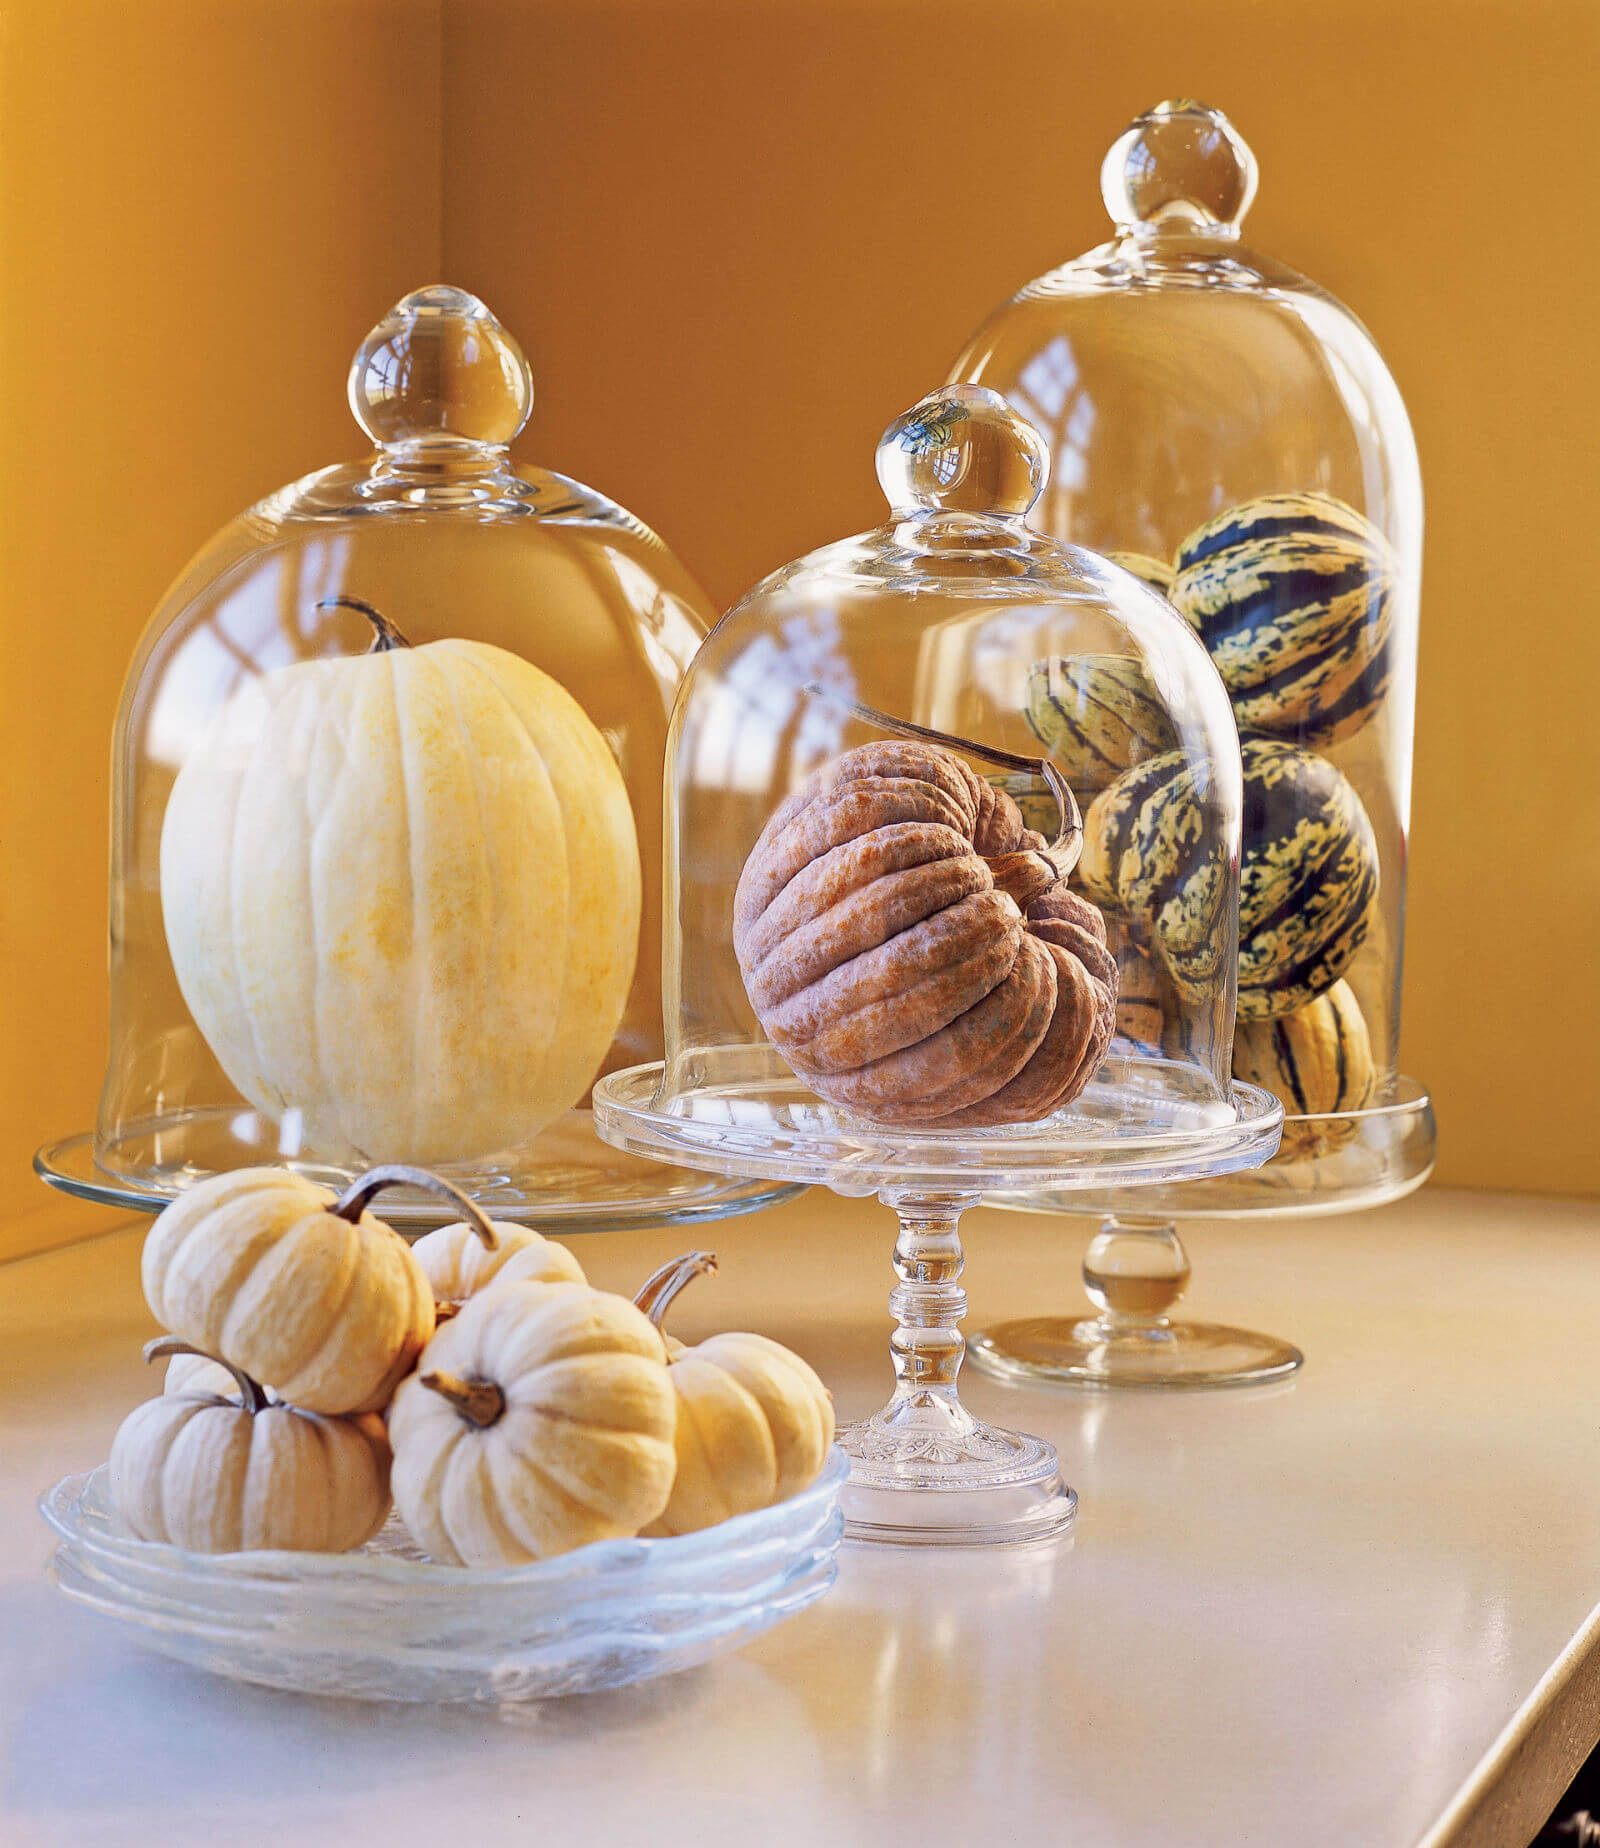 Pinecone and Pumpkin Apothecary Jar Centerpiece